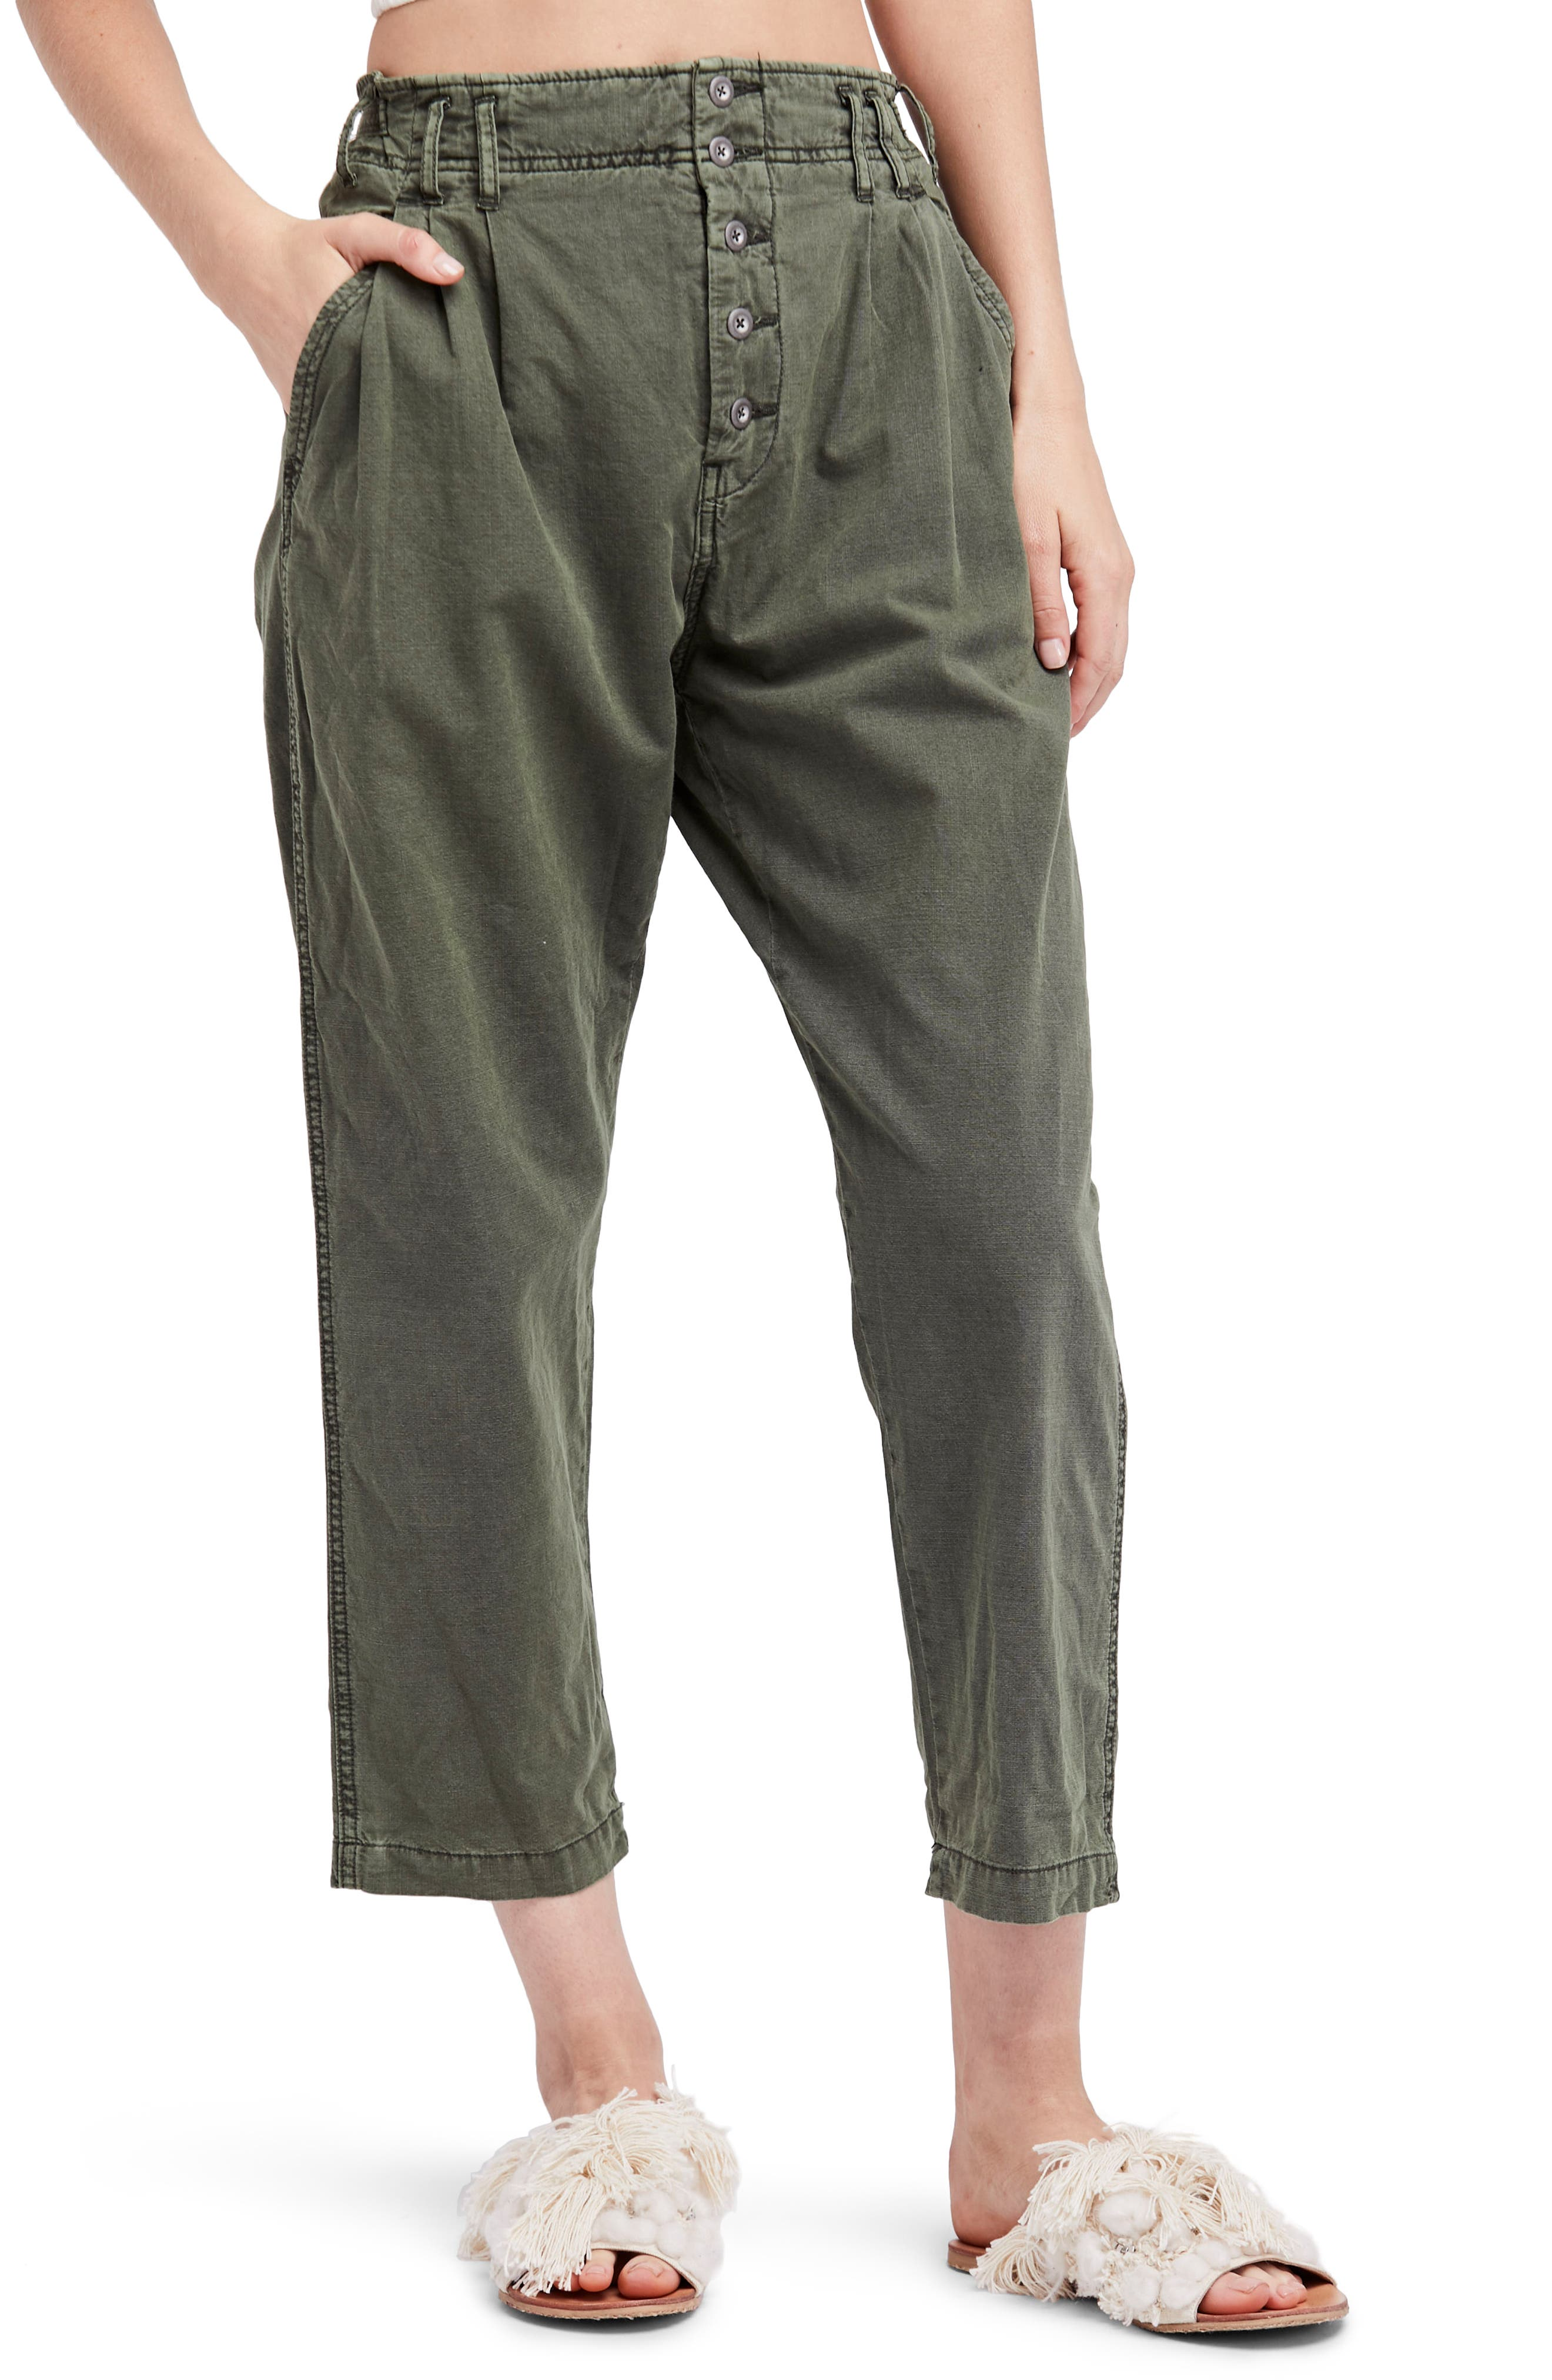 Compass Star Trousers,                             Main thumbnail 1, color,                             Slate